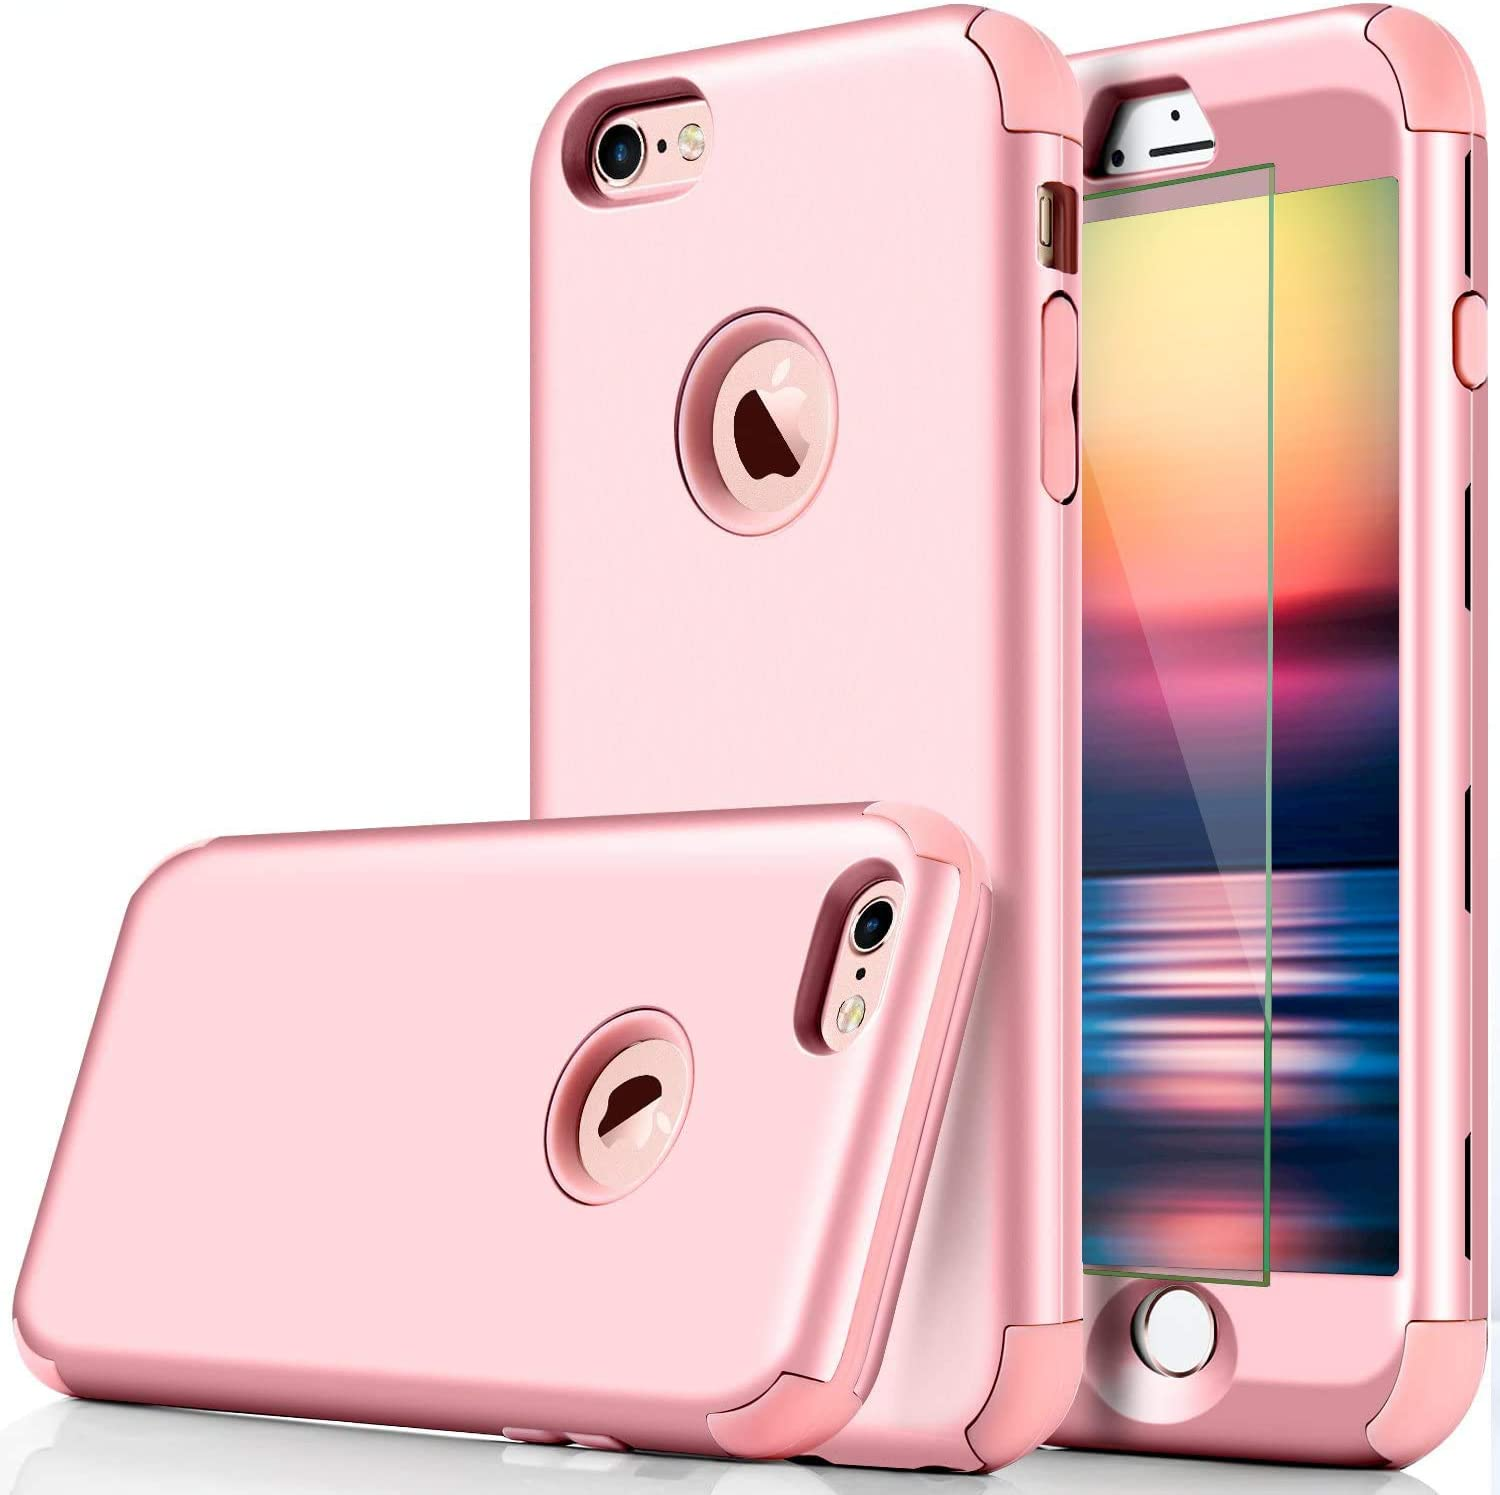 DUDETOP Compatible with iPhone 7 Case/iPhone 8 Case,3-in-1 360 Full Body Shockproof Armor Protective Cover Design with Tempered Glass Screen Protector for Apple iPhone 7/8 4.7